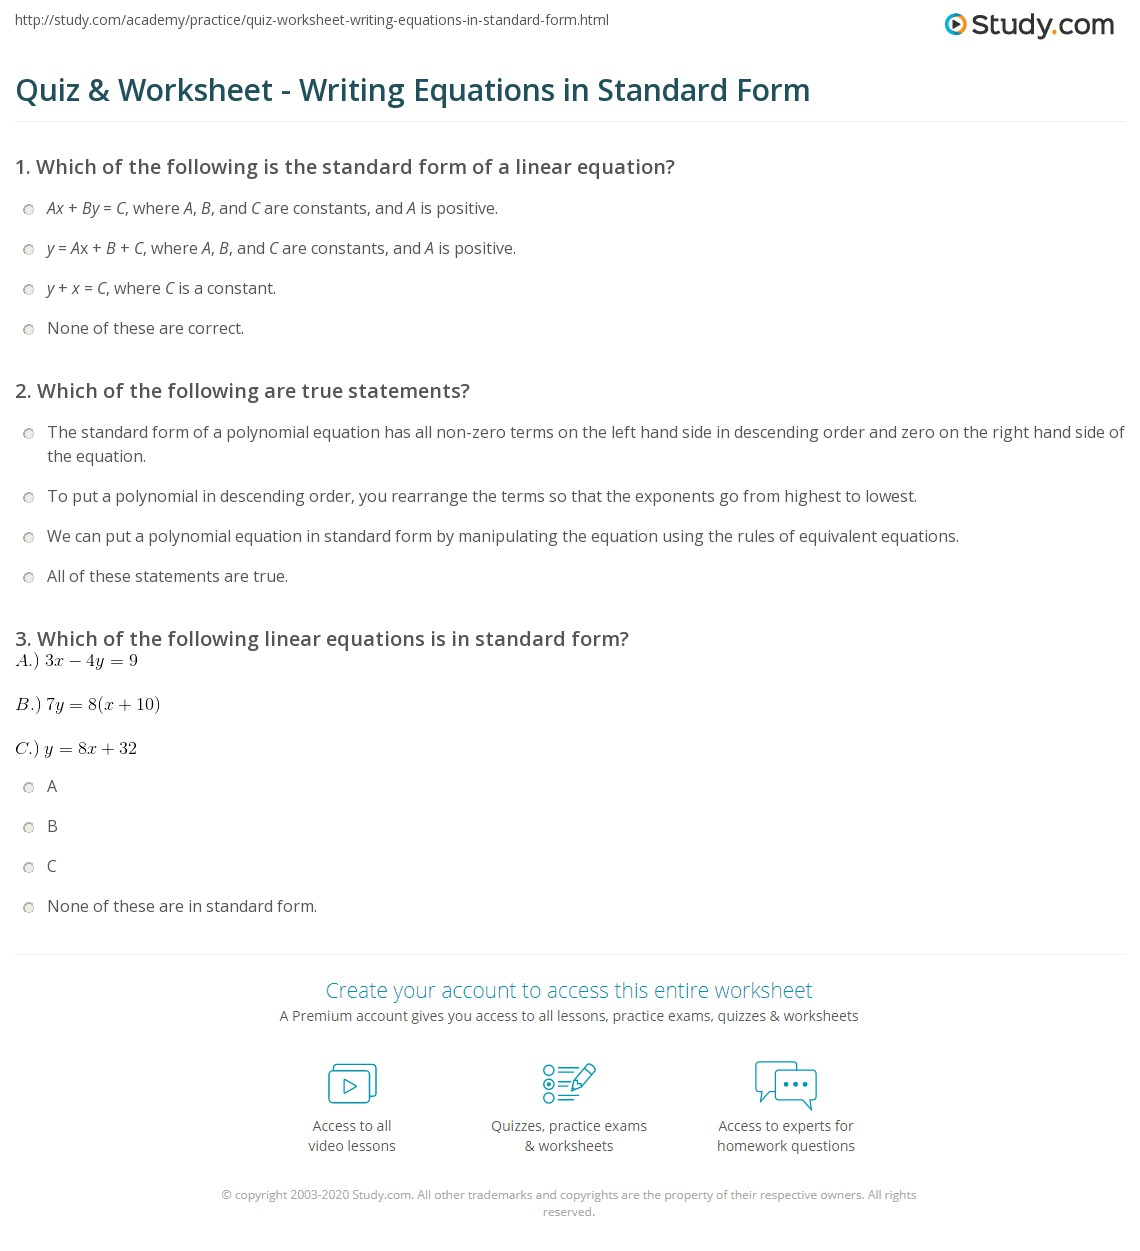 Quiz worksheet writing equations in standard form study print how to write an equation in standard form worksheet falaconquin